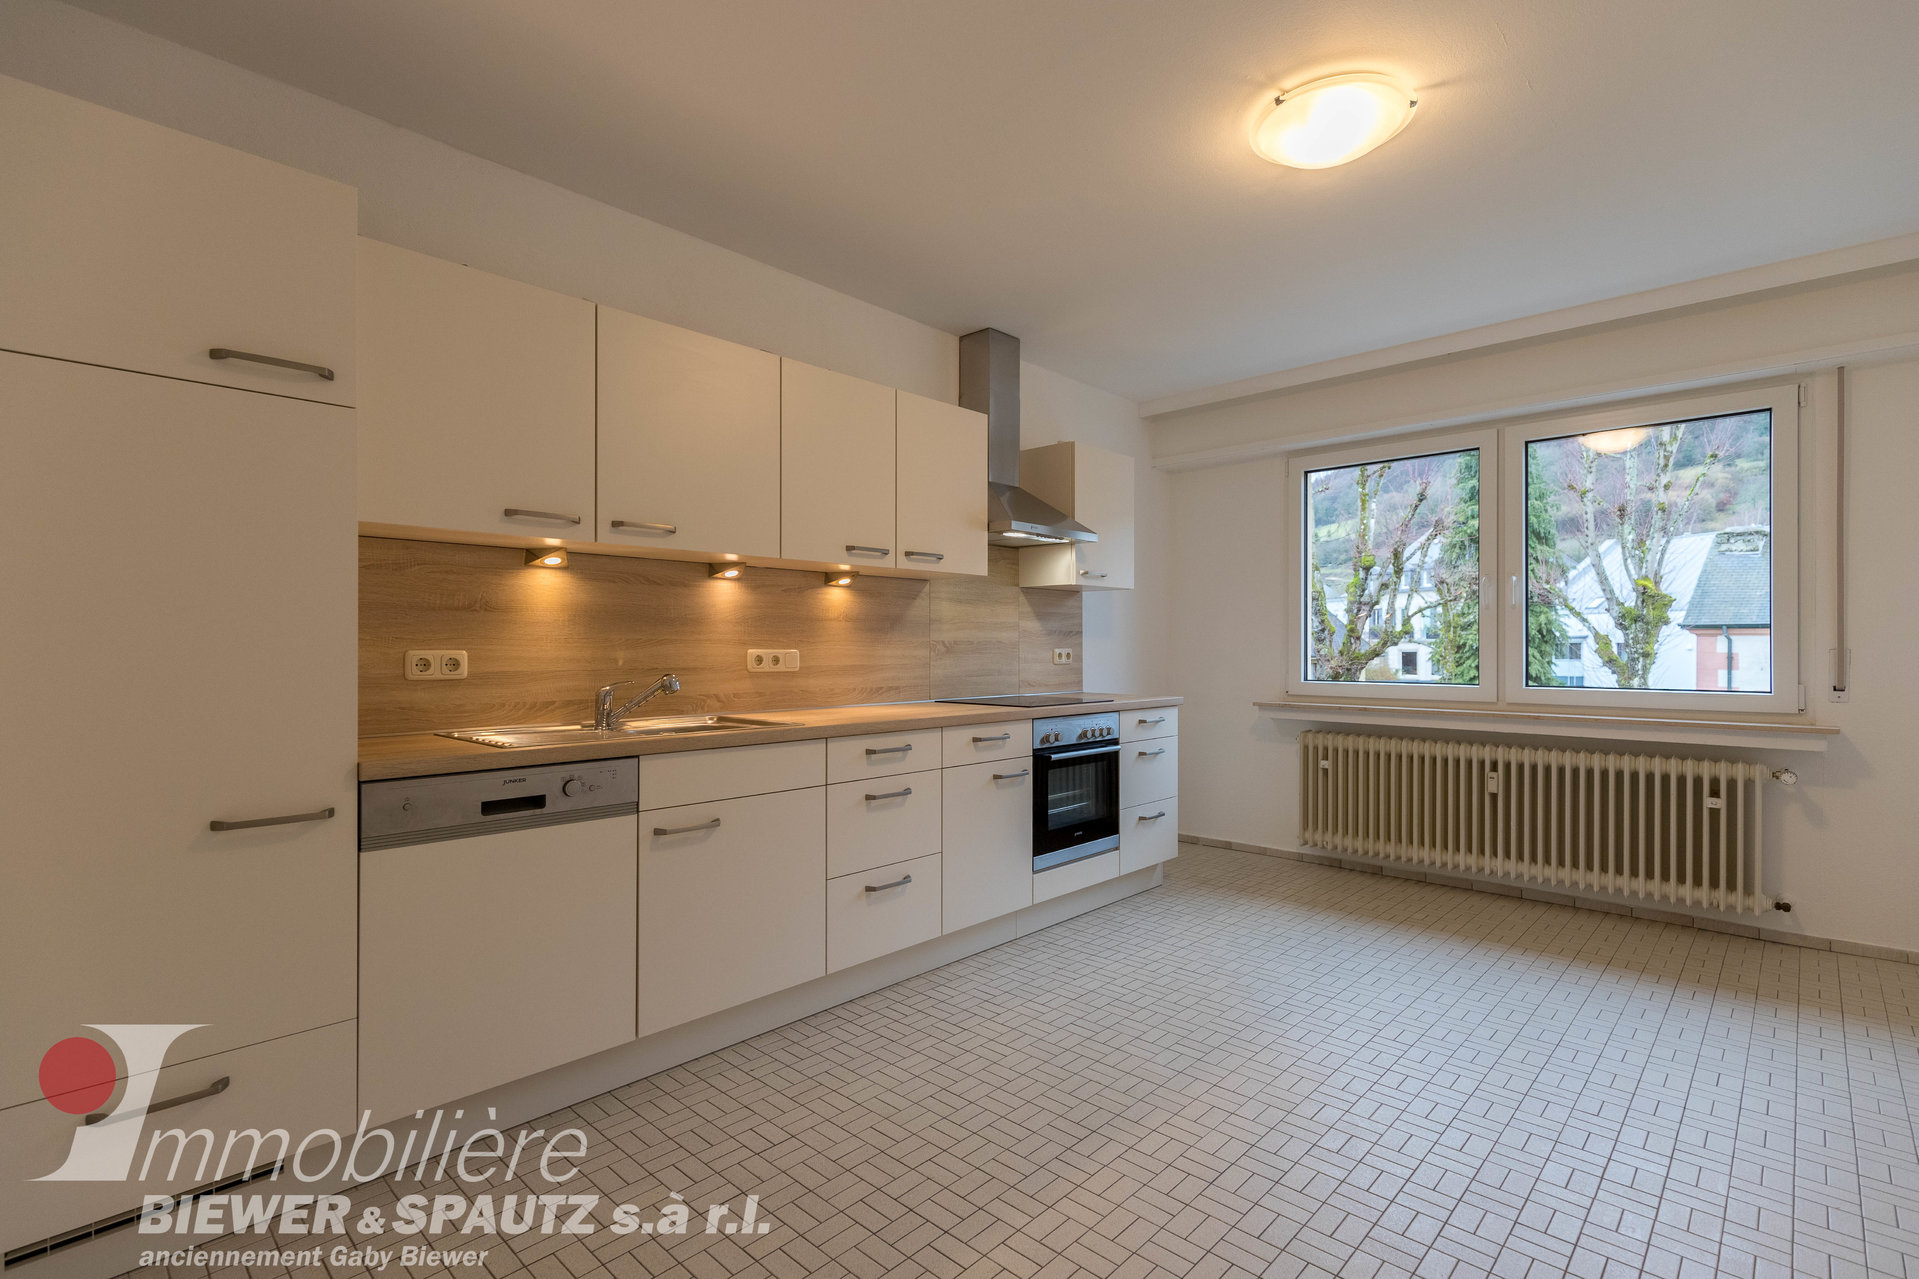 FOR RENT - apartment with 2 bedrooms in Echternach